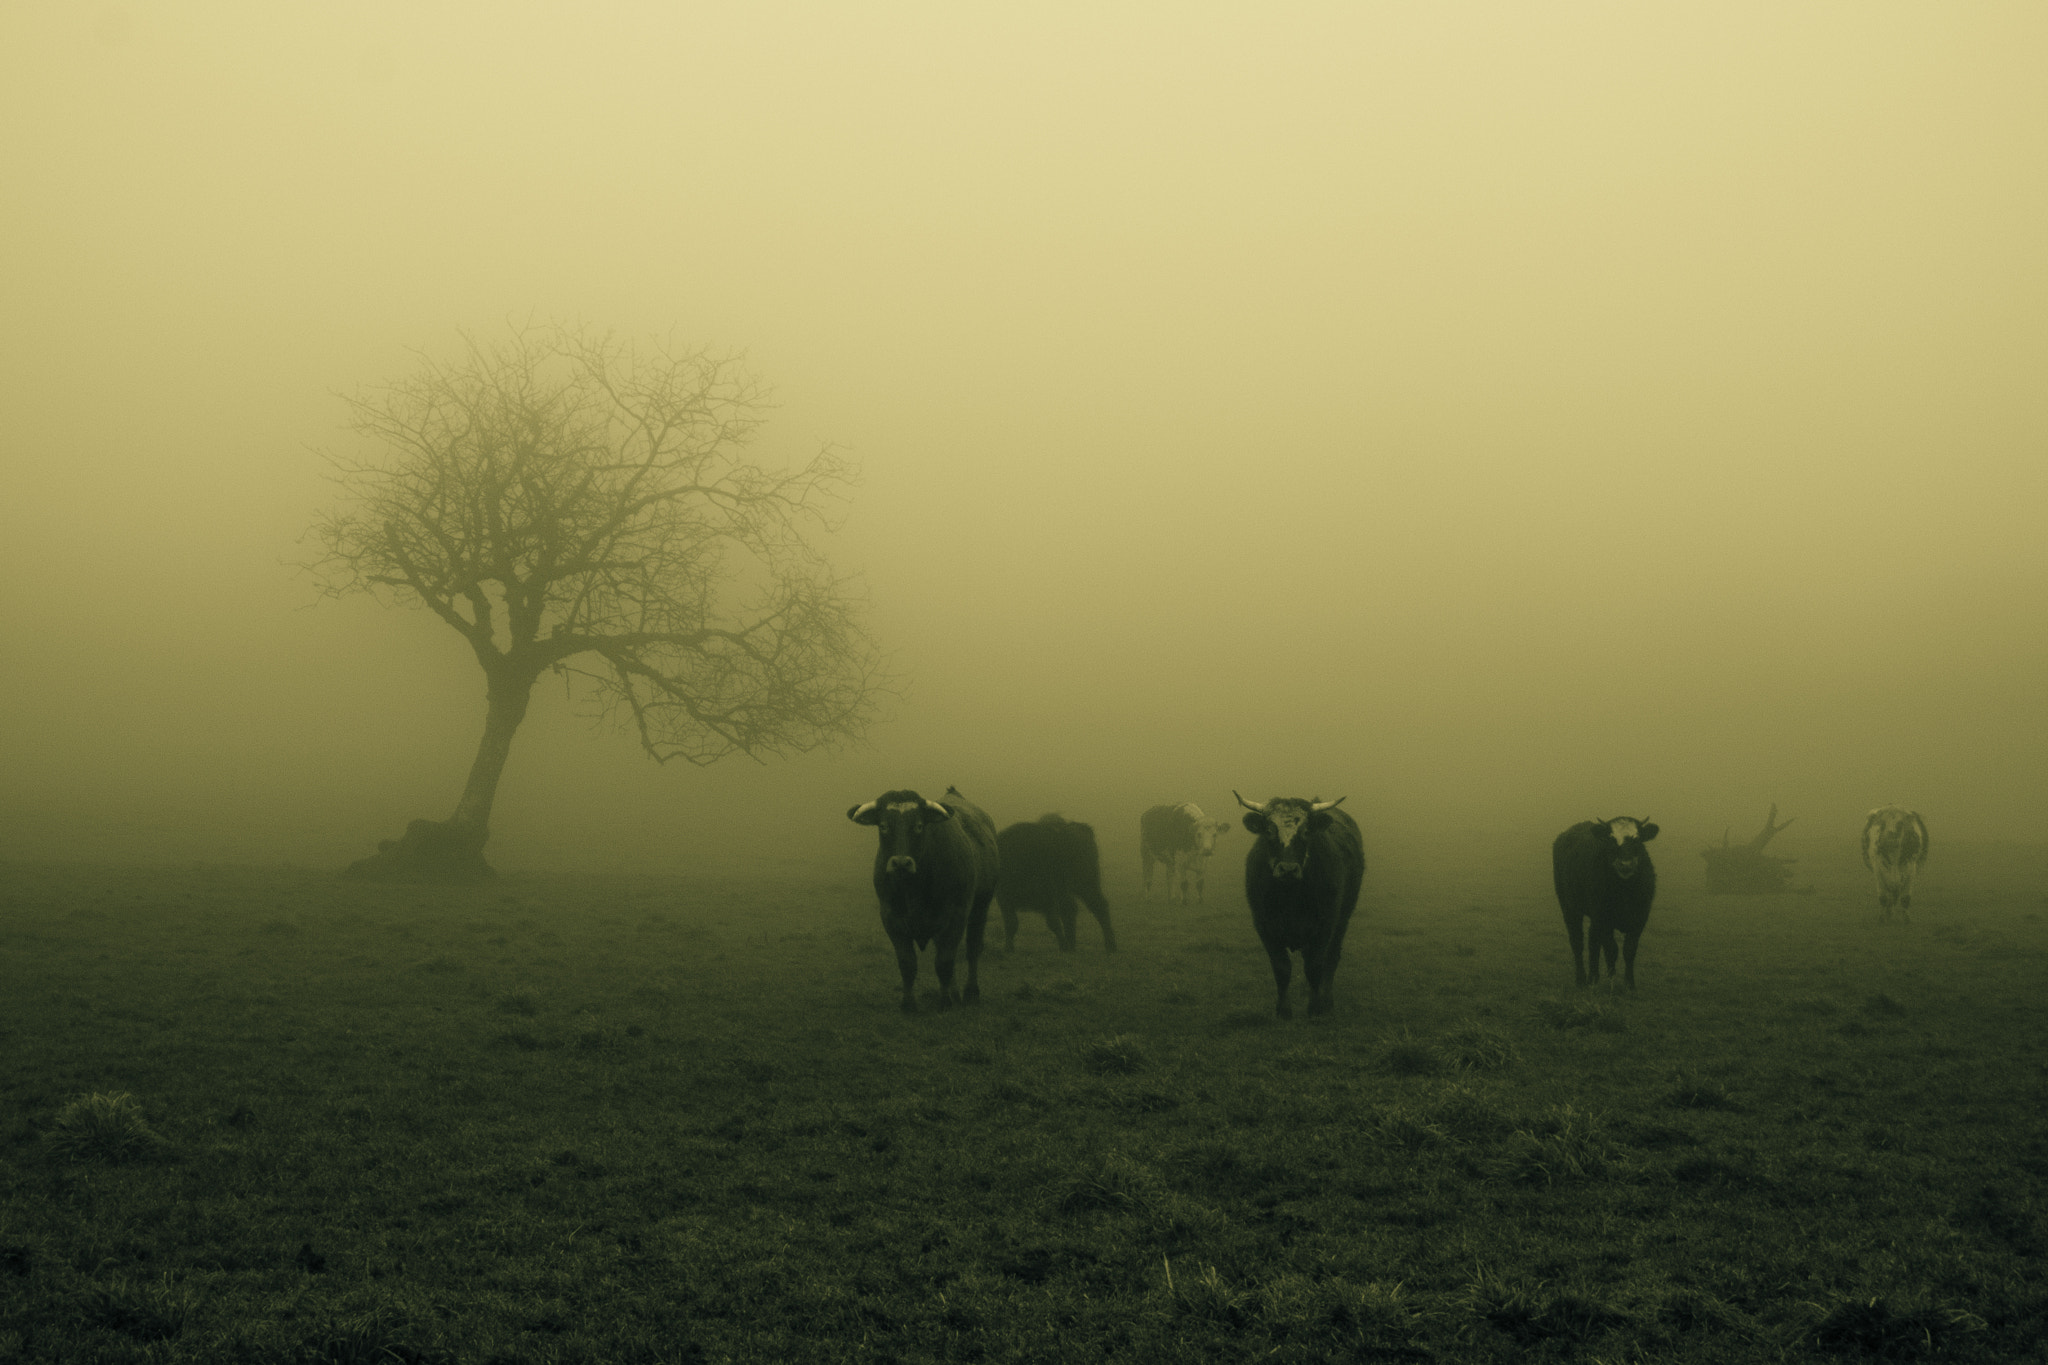 Photograph Vachement brumeux by Lucien Vatynan on 500px